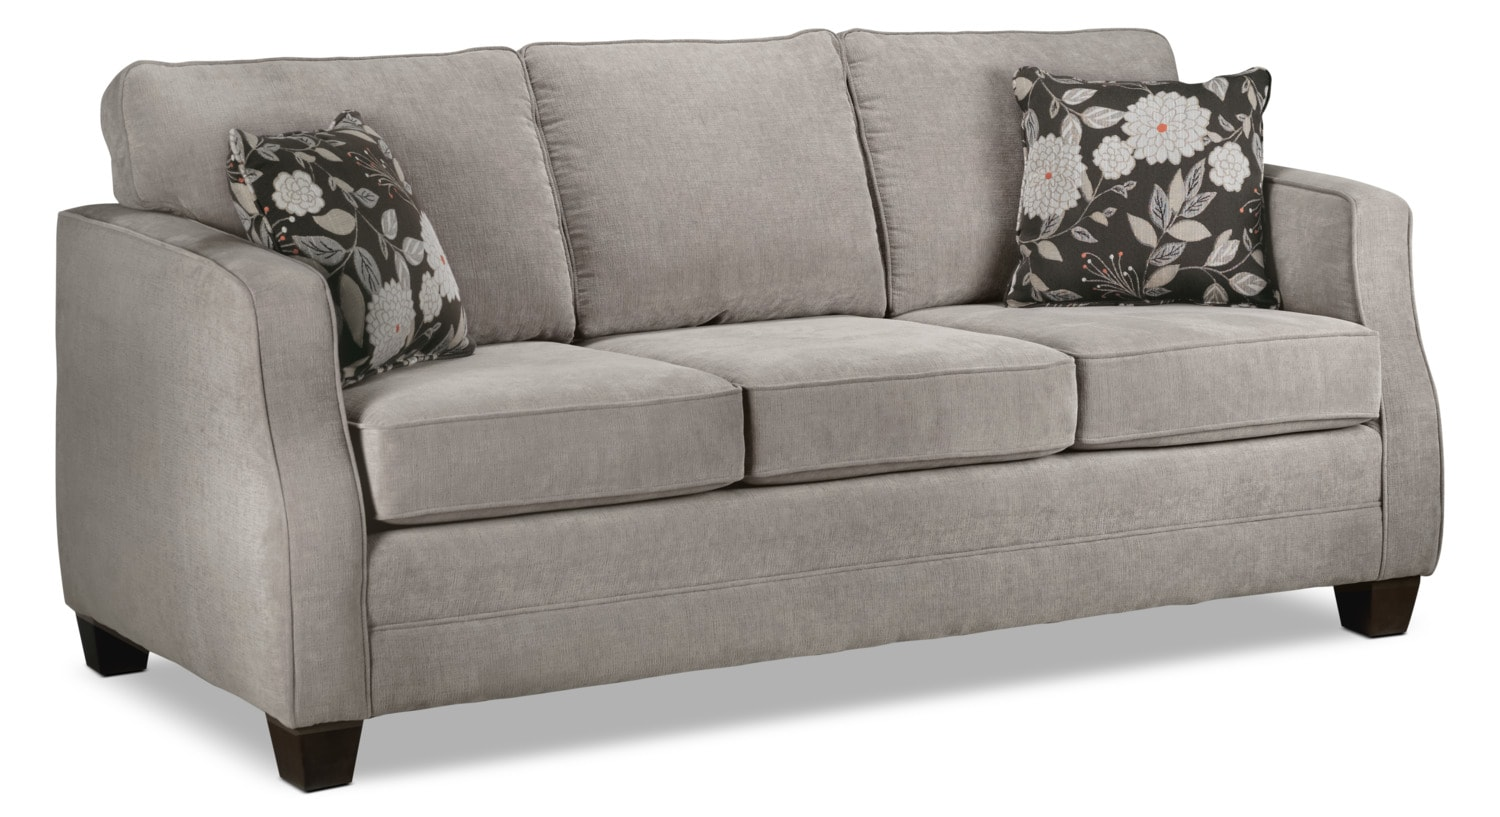 fabulous taupe living room furniture | Agnes Sofa - Taupe | Leon's